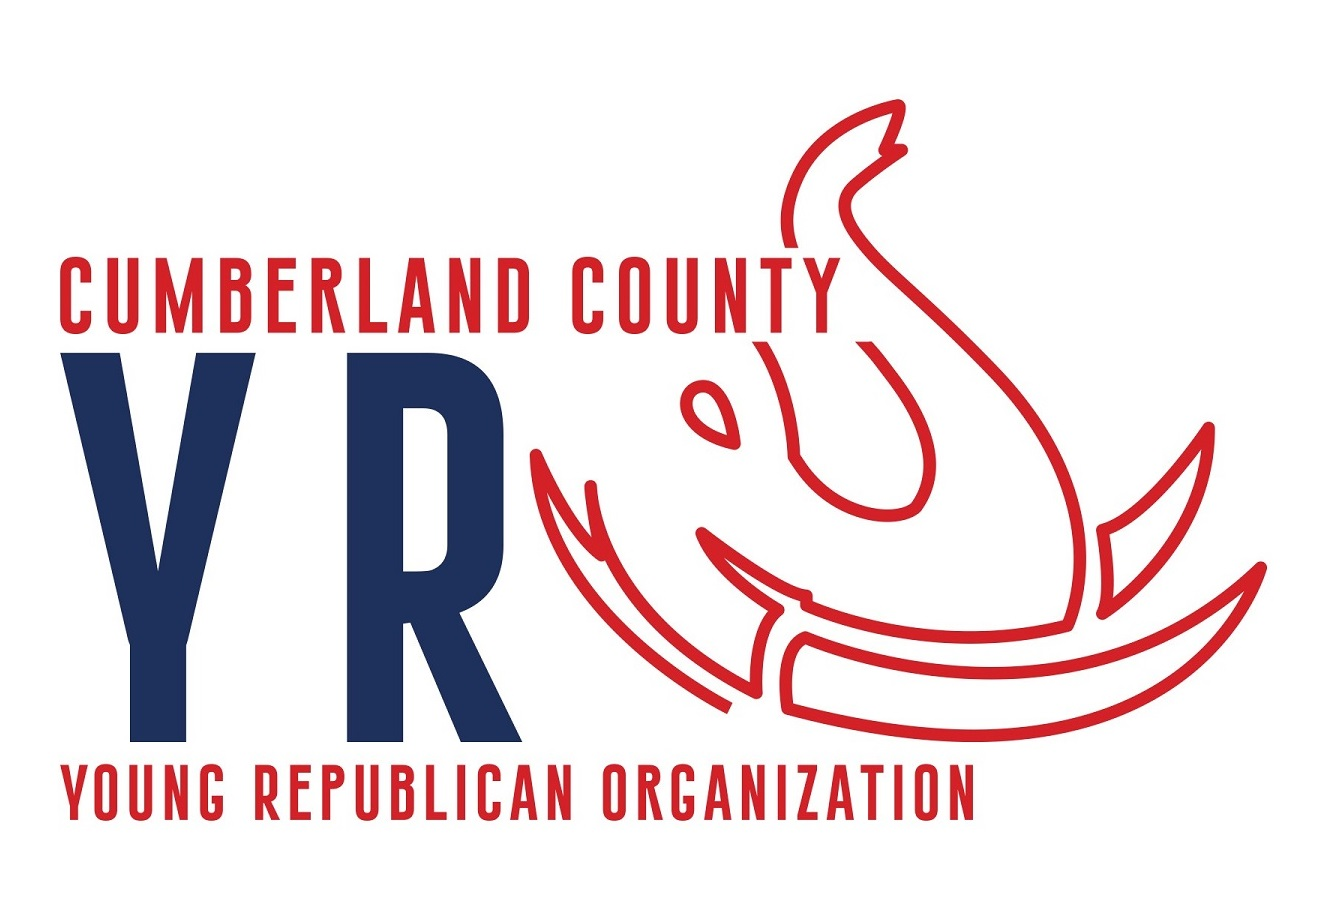 Cumberland County Young Republican Organization, Inc. primary image